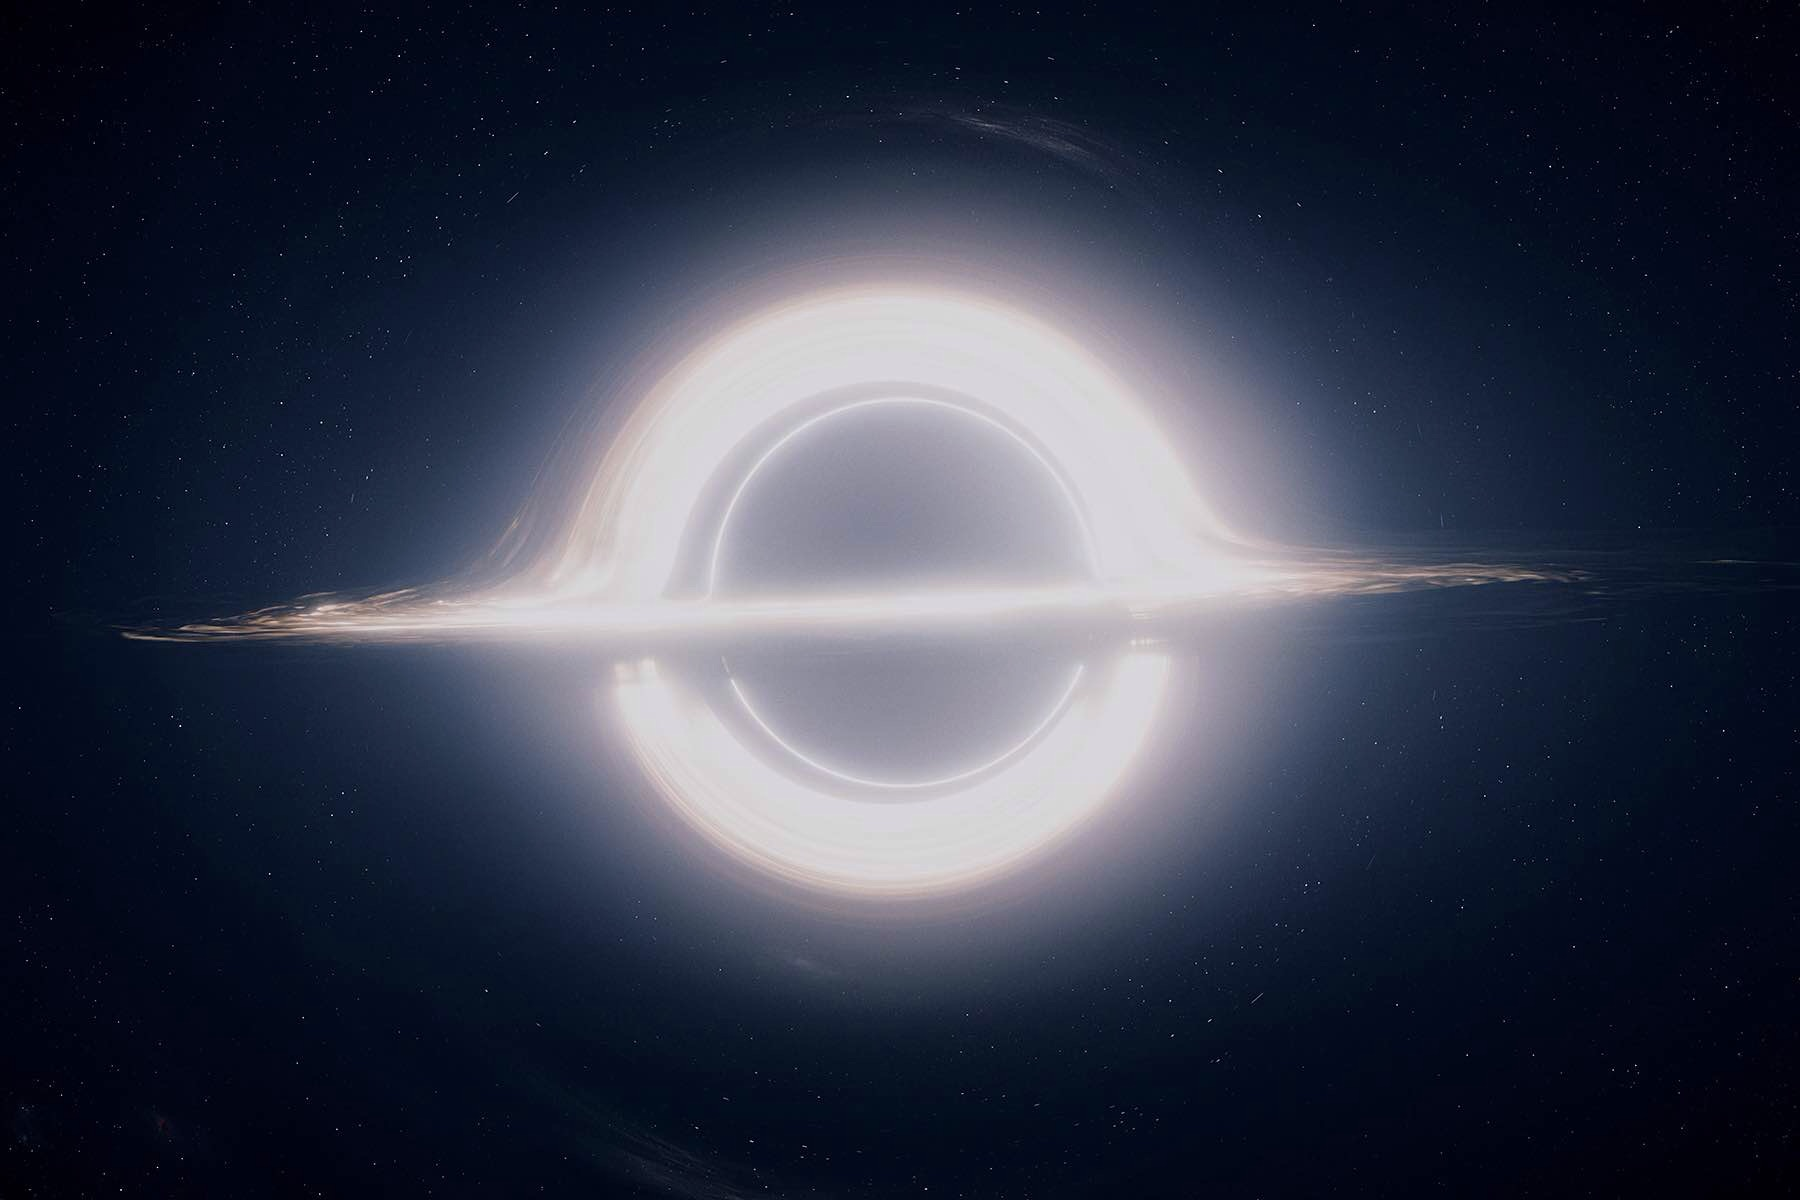 The black hole in *Interstellar*